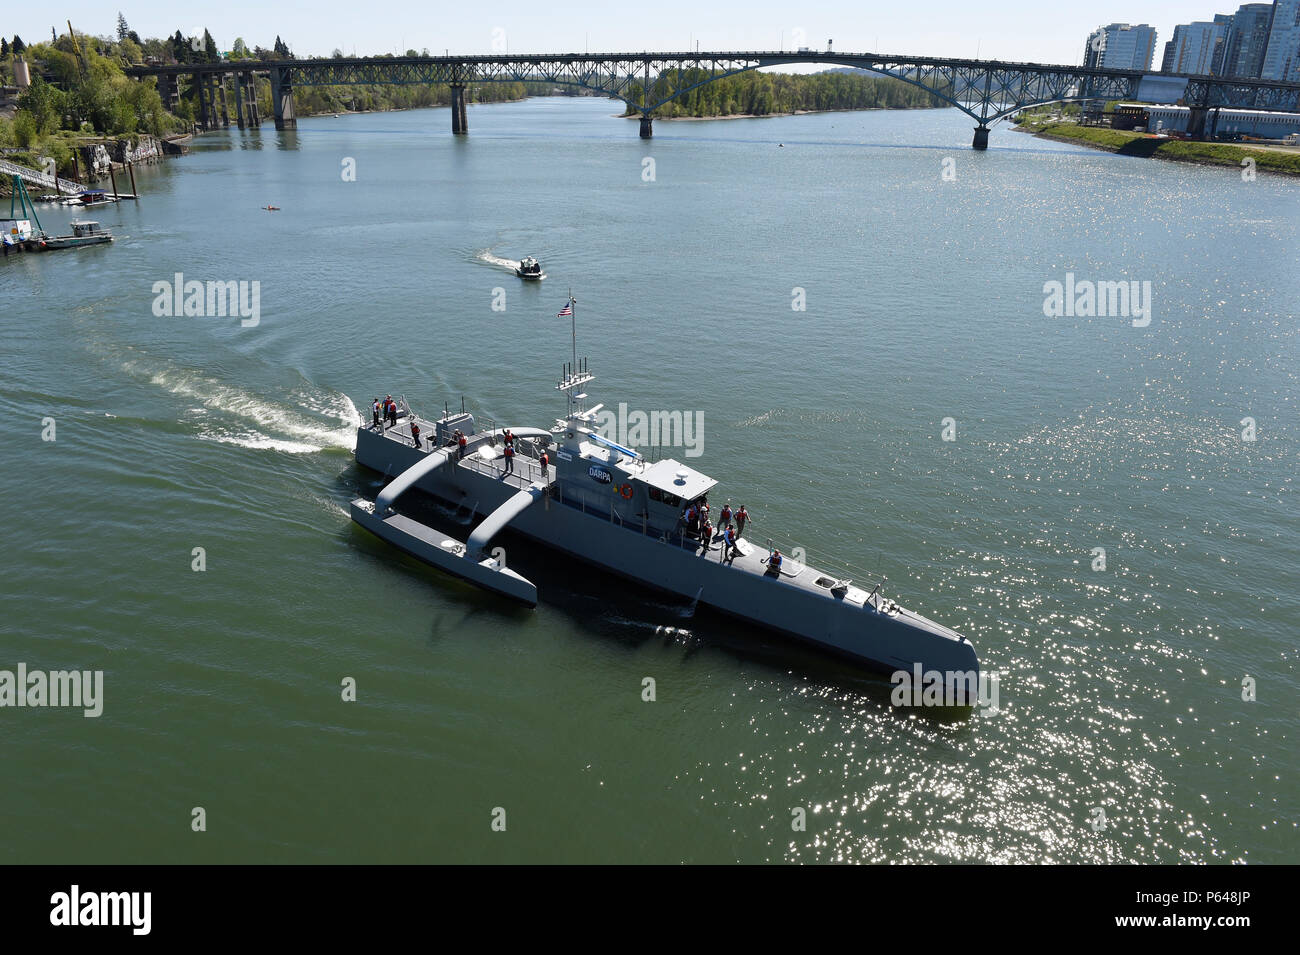 Williammette Fluss Stockfotos & Williammette Fluss Bilder - Alamy